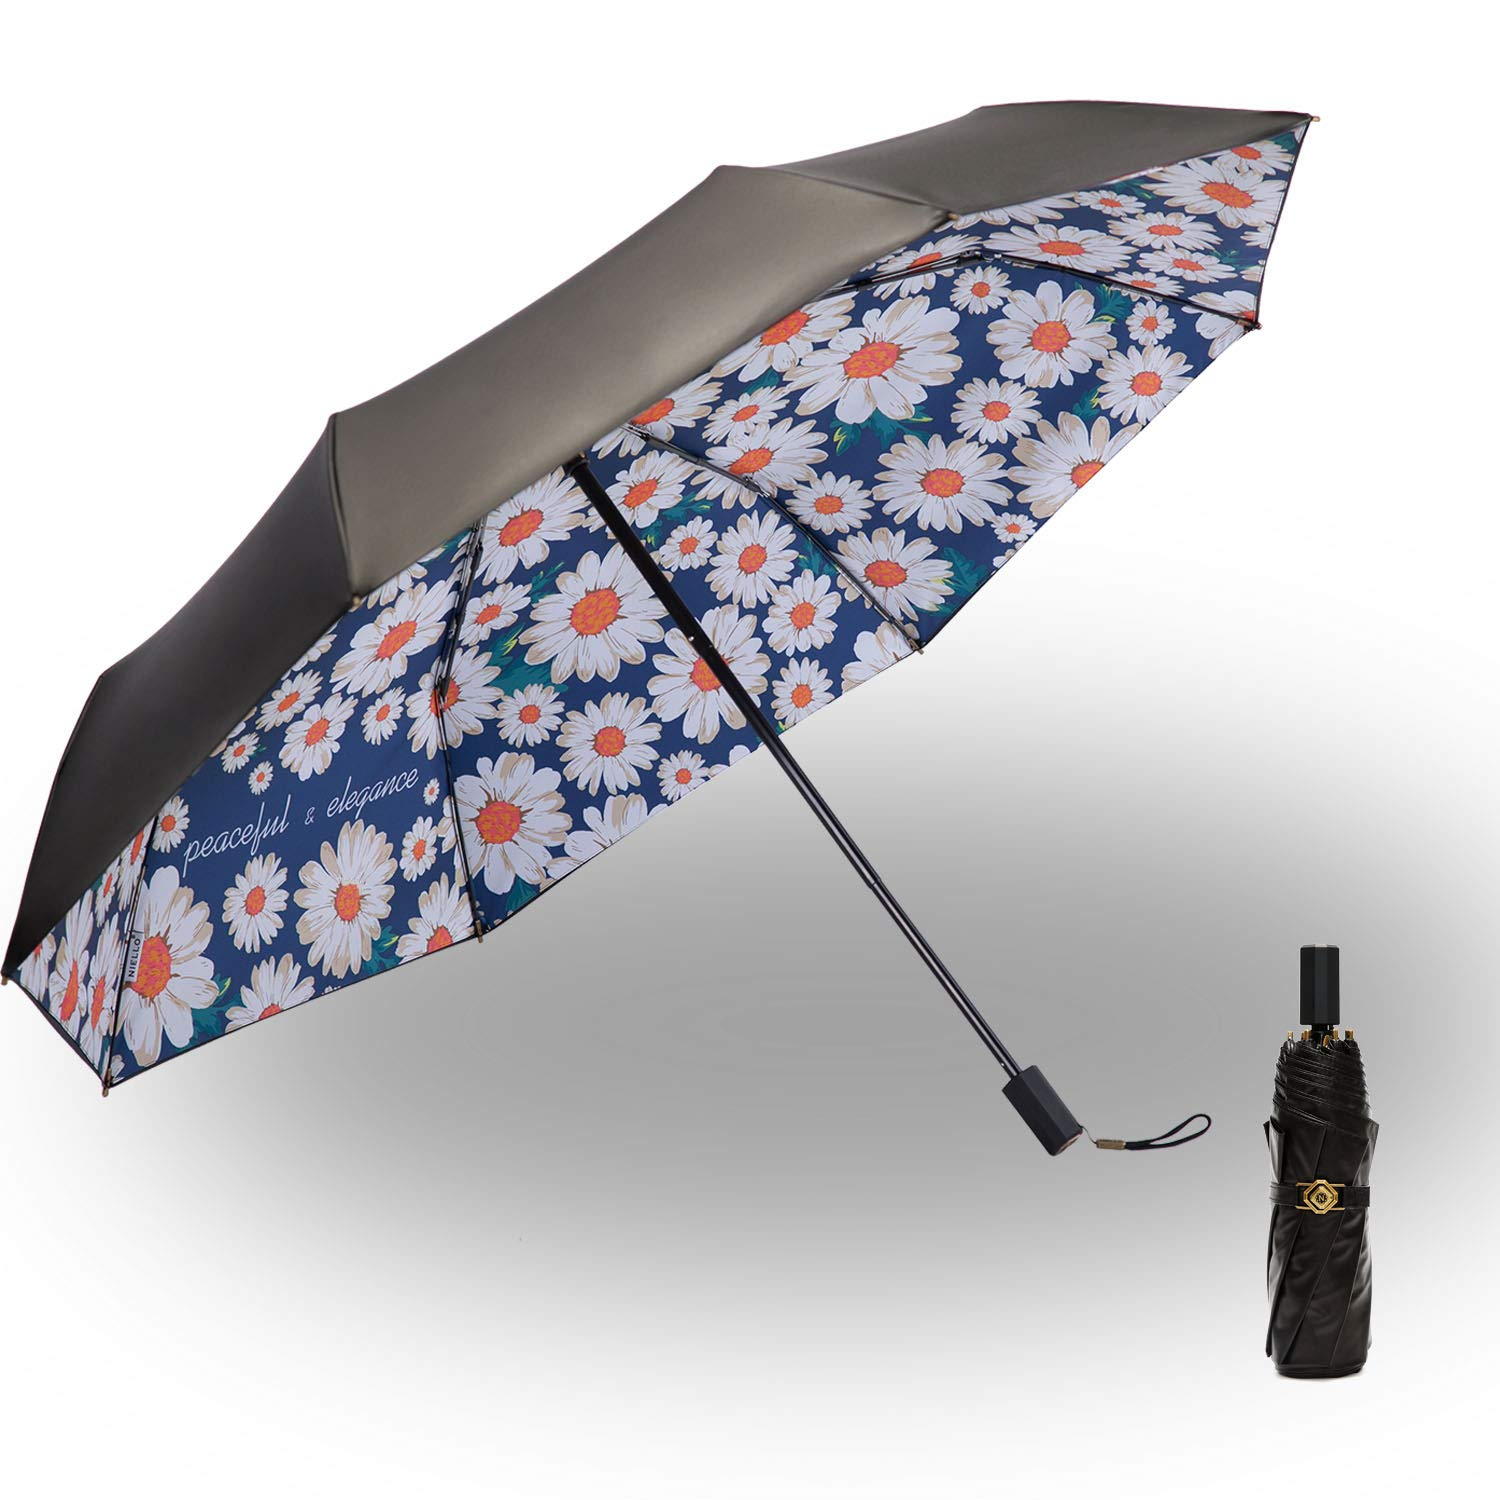 Folding Compact Travel Umbrella Windproof & Waterproof & Sun Block Outdoor Double Canopy Umbrella Vintage Daisy painting by Niello